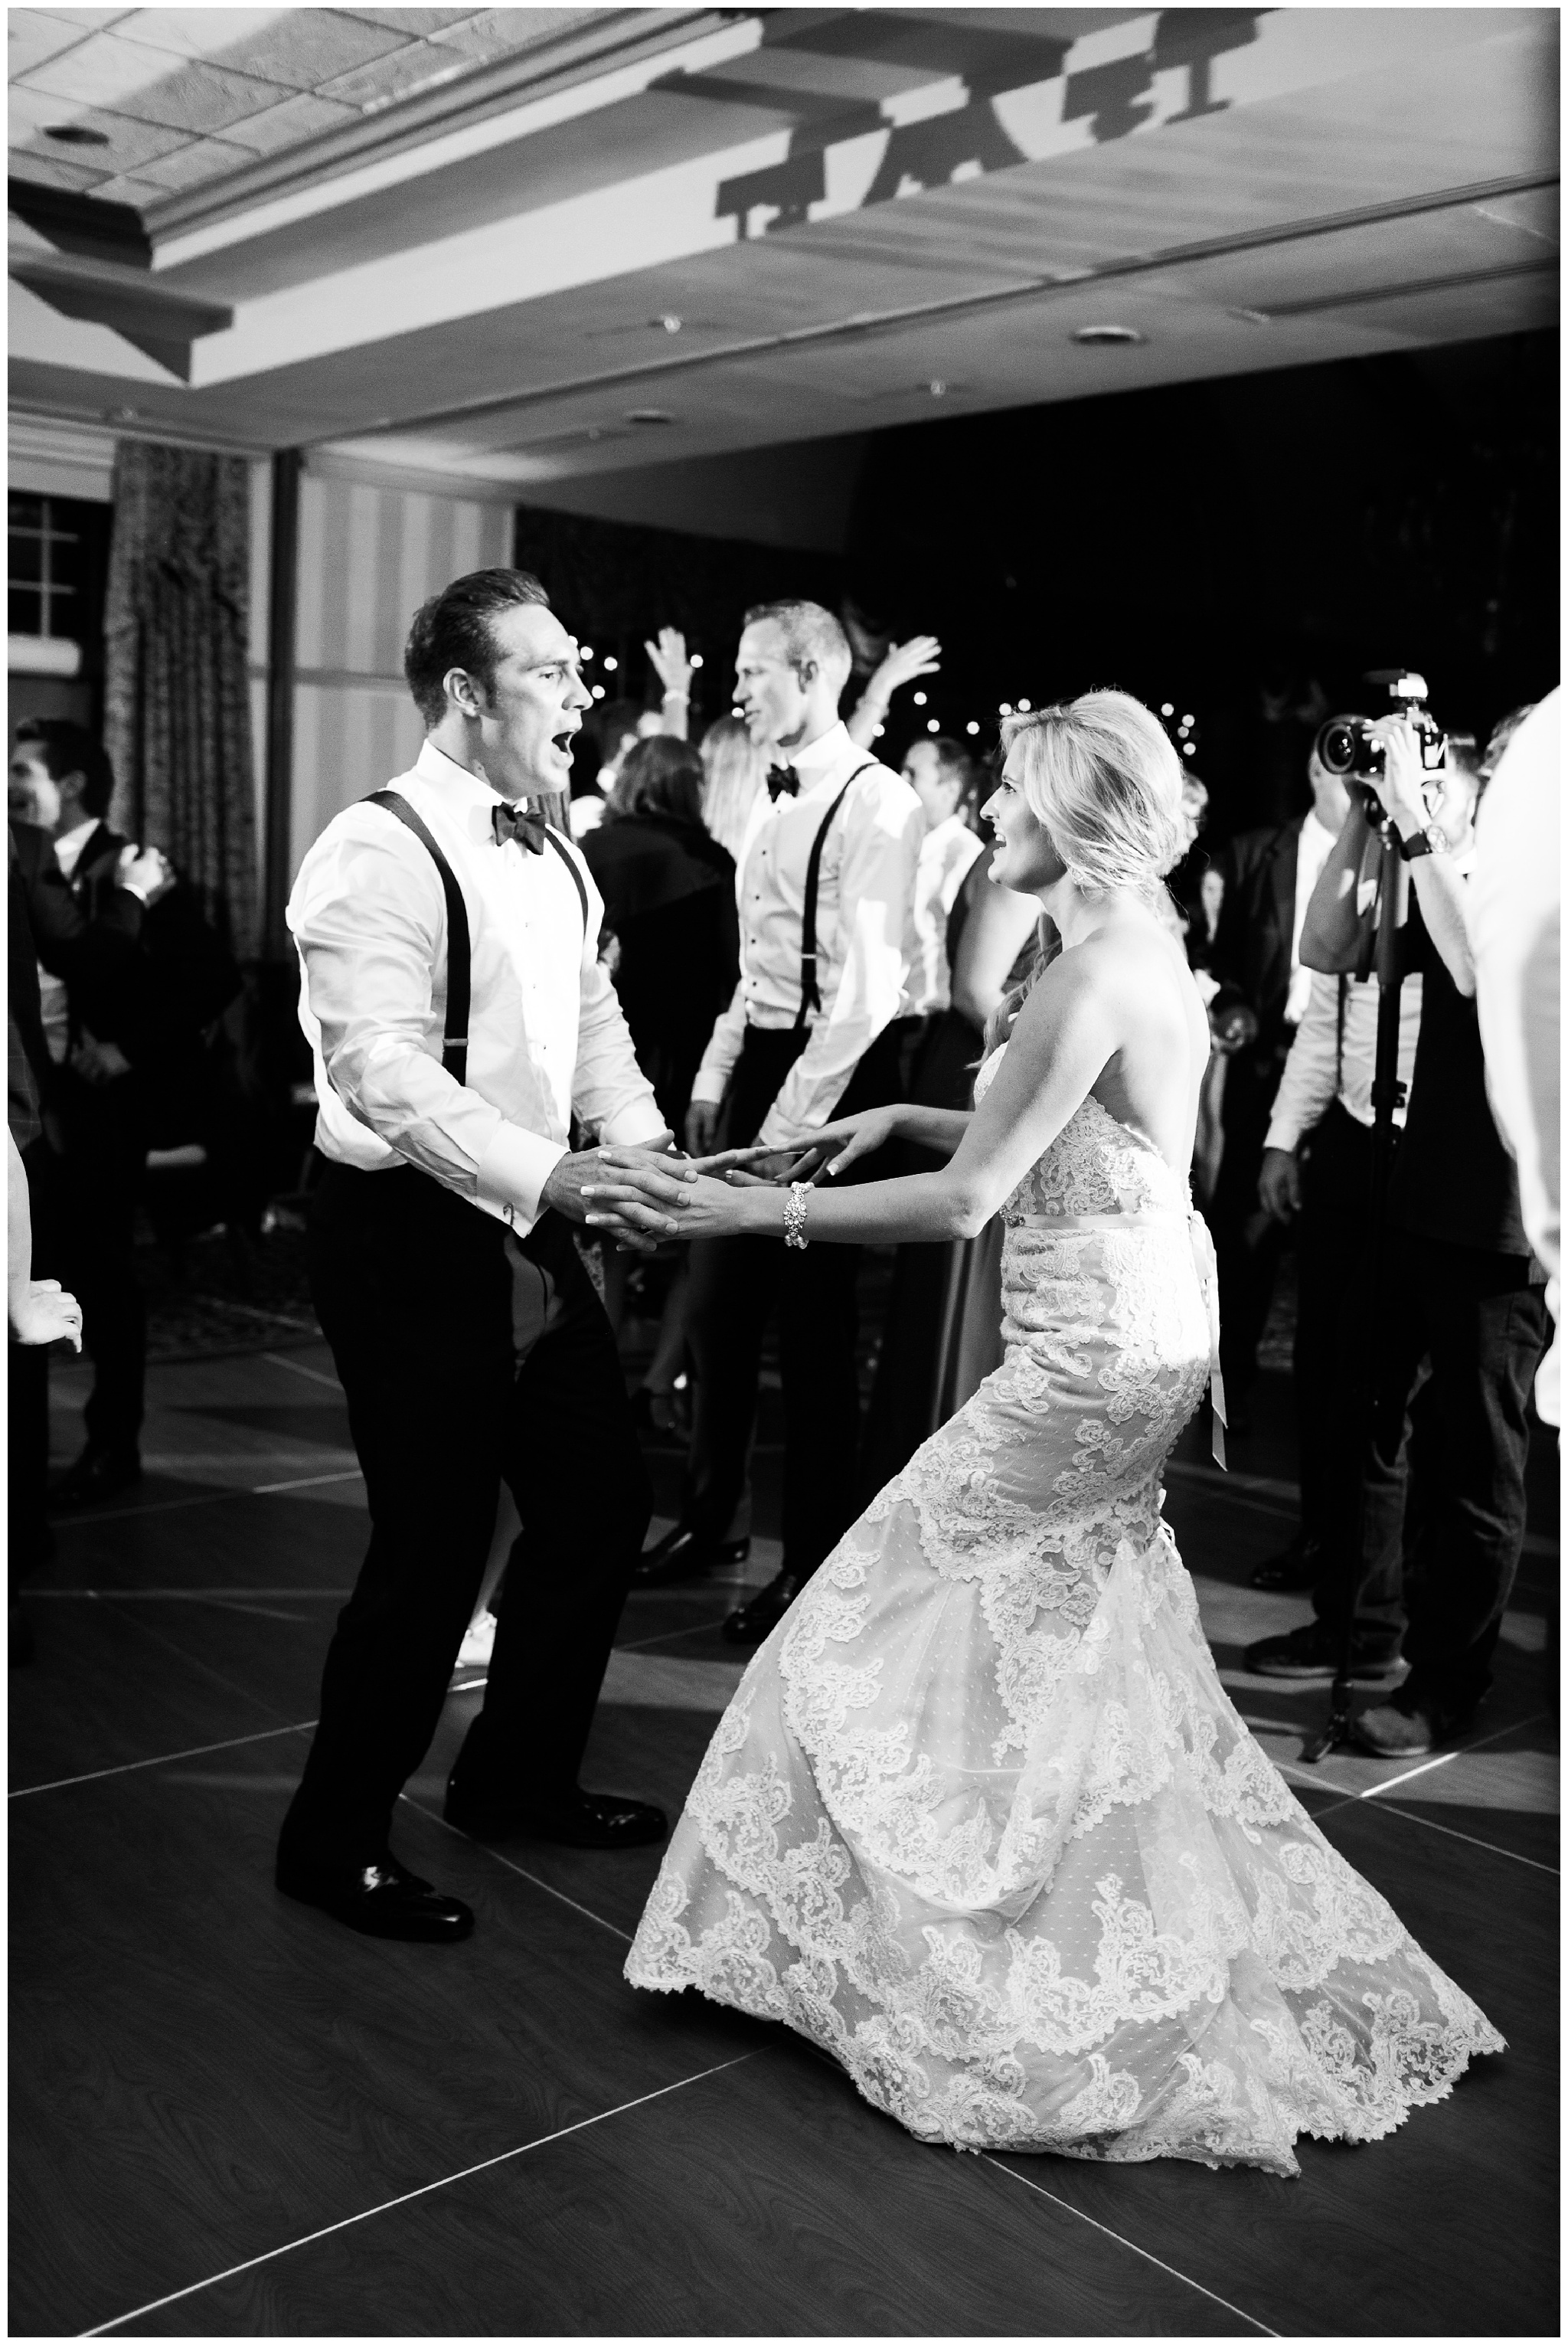 RebeccaHaleyPhotography_BarringtonPhotographer_ChicagoPhotographer_ChicagoWedding_0091.jpg